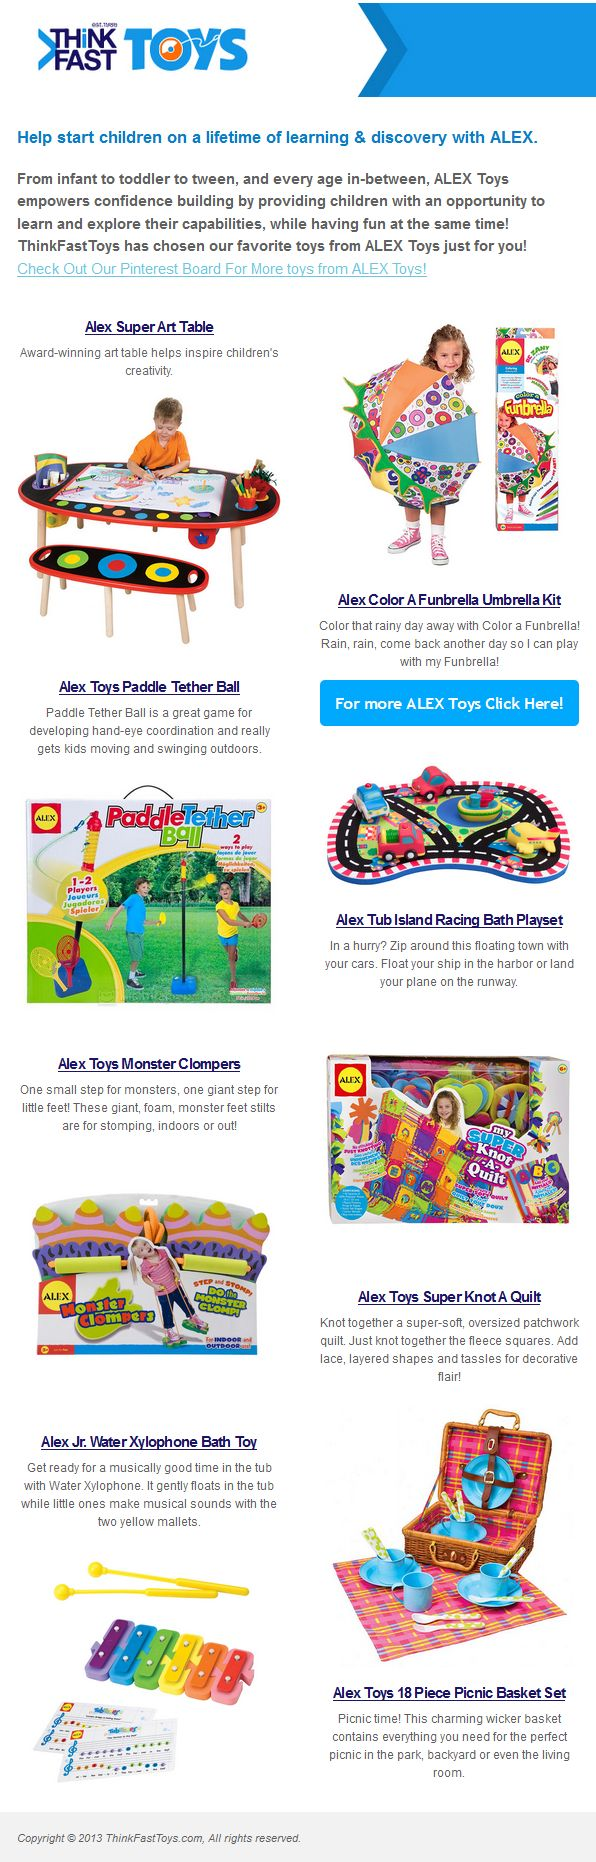 From infant to toddler to tween, and every age in-between, ALEX Toys empowers confidence building by providing children with an opportunity to learn and explore their capabilities, while having fun at the same time! ThinkFastToys has chosen our favorite toys from ALEX Toys just for you!